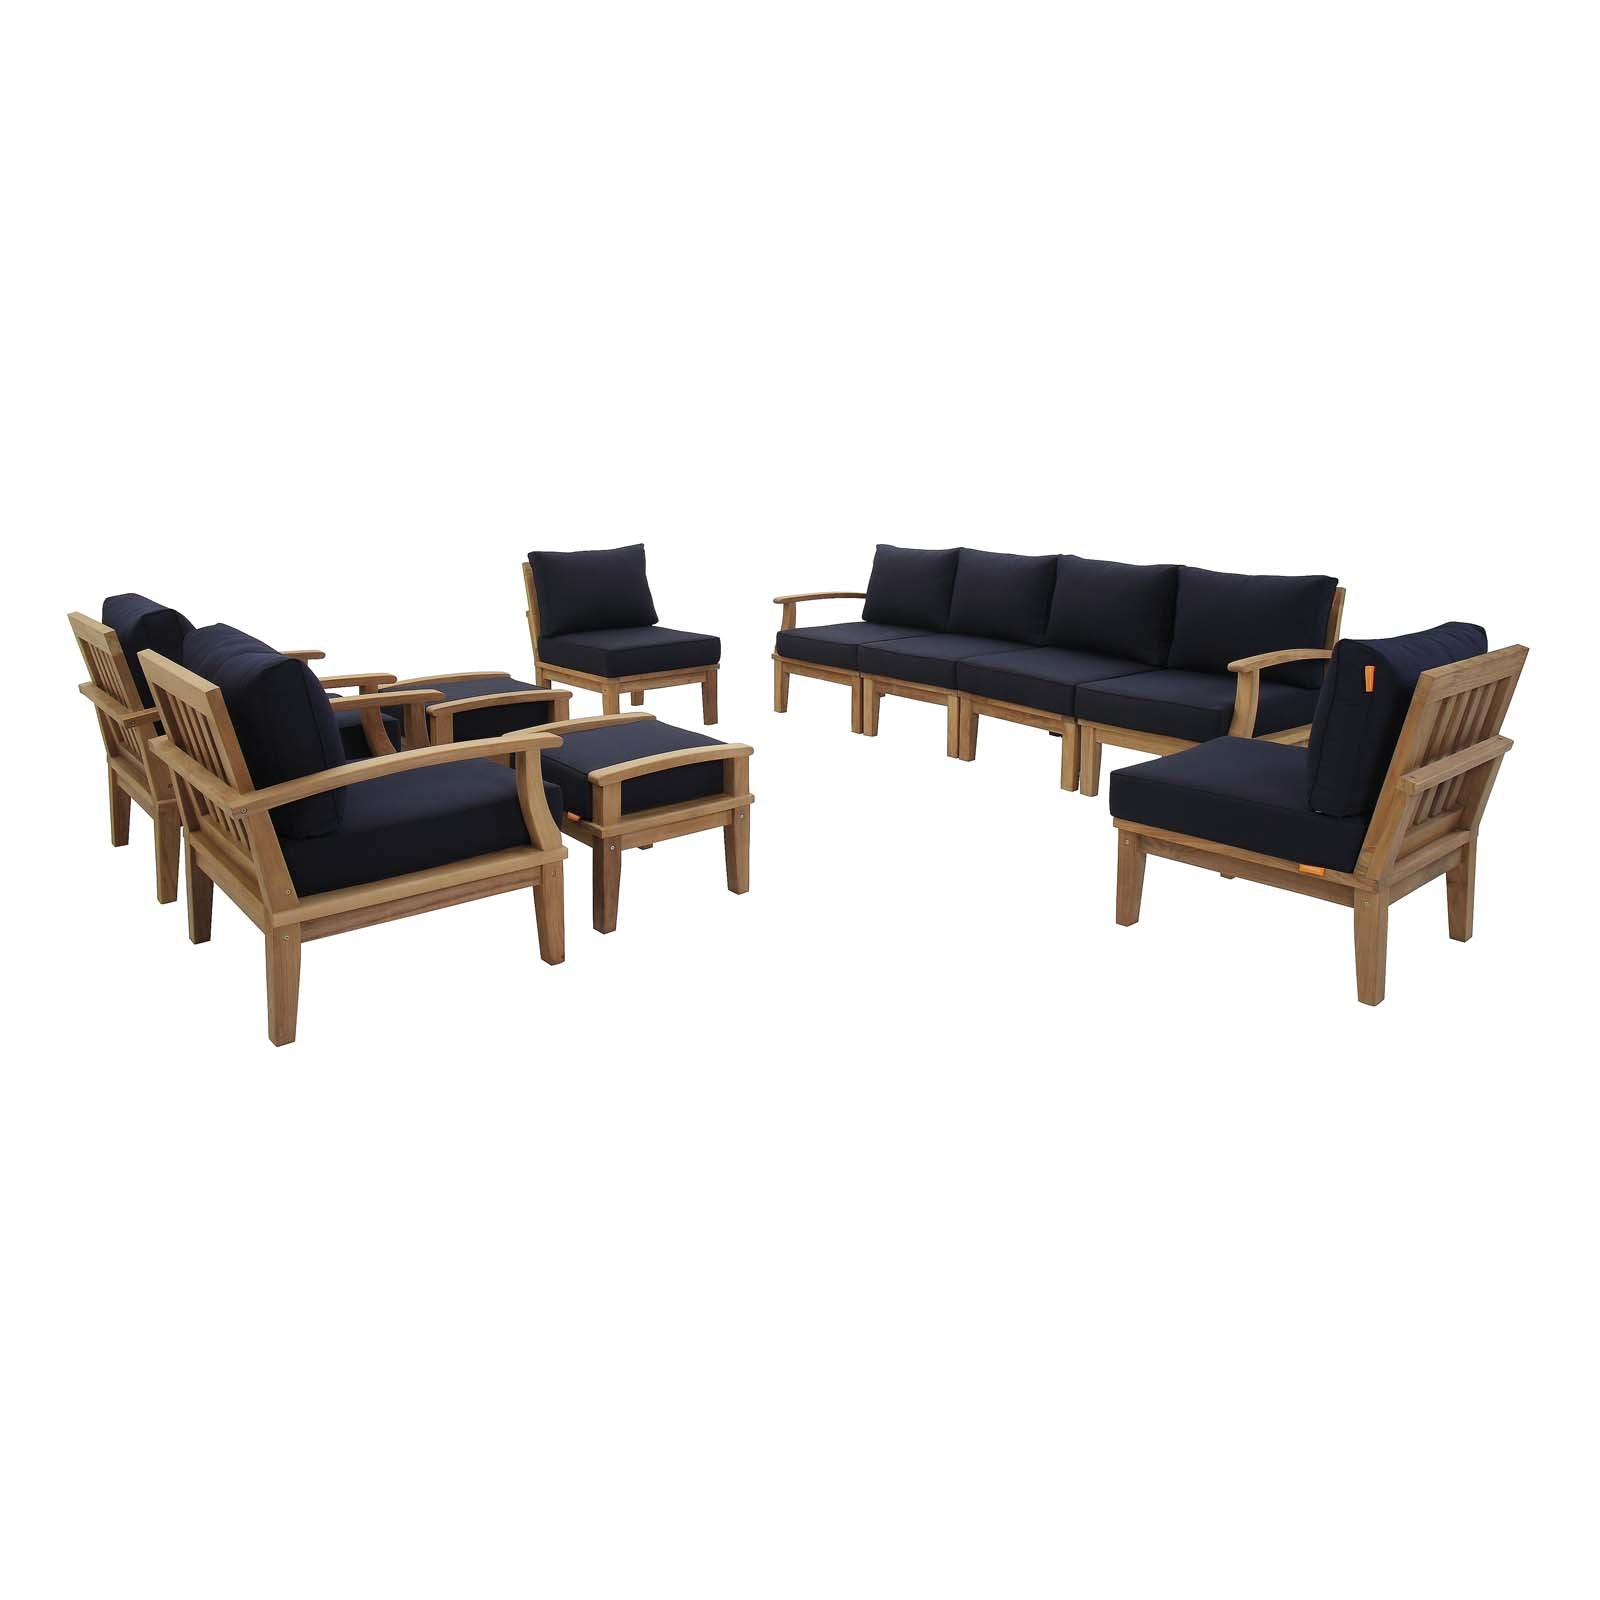 Modway Furniture Modern Marina 10 Piece Outdoor Patio Teak Sofa Set